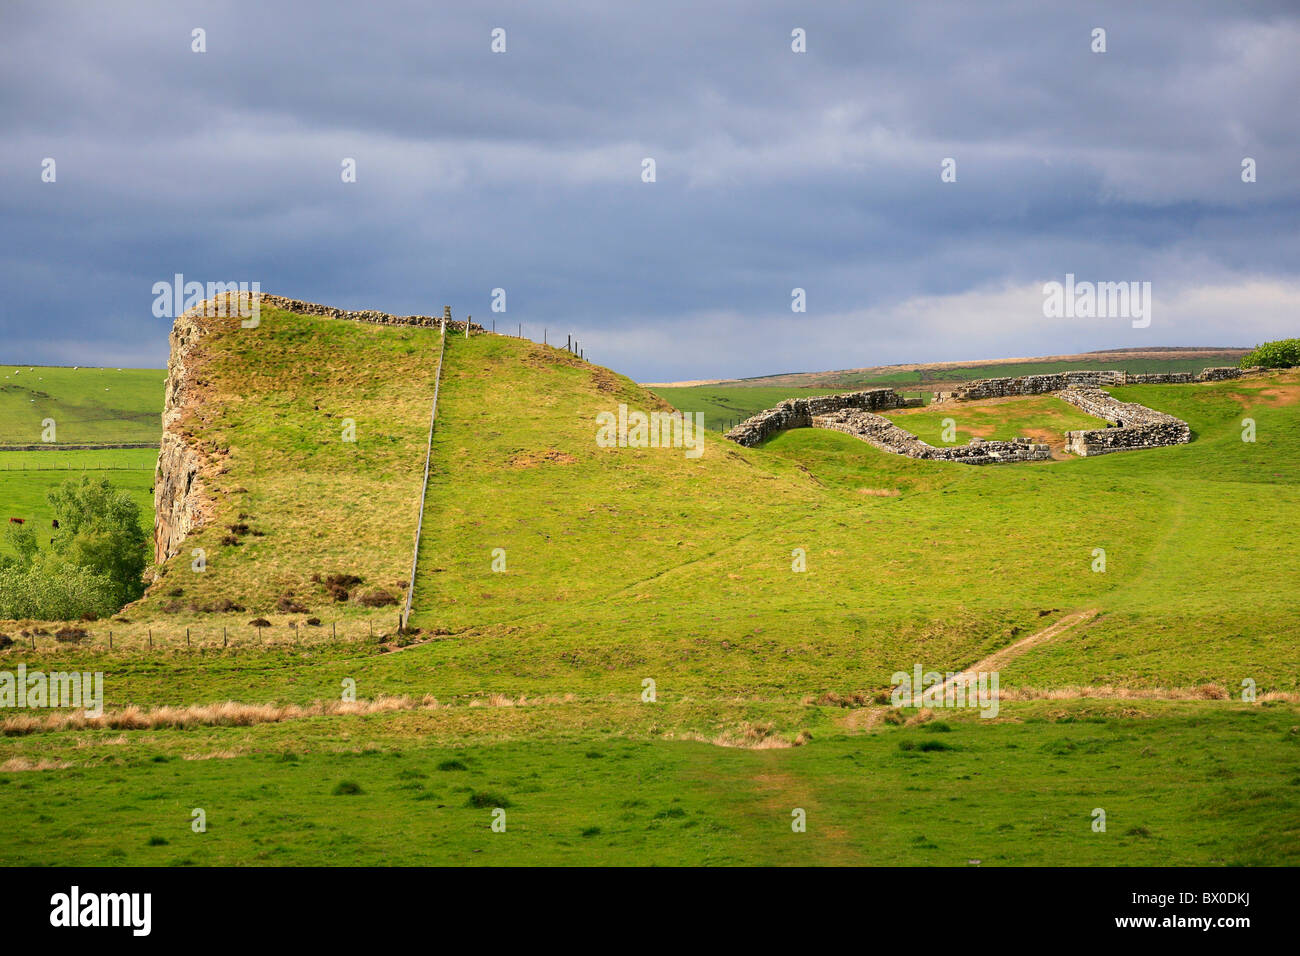 Hadrian's Wall and Milecastle 45 at Walltown crags, Greenhead, Northumberland, England - Stock Image